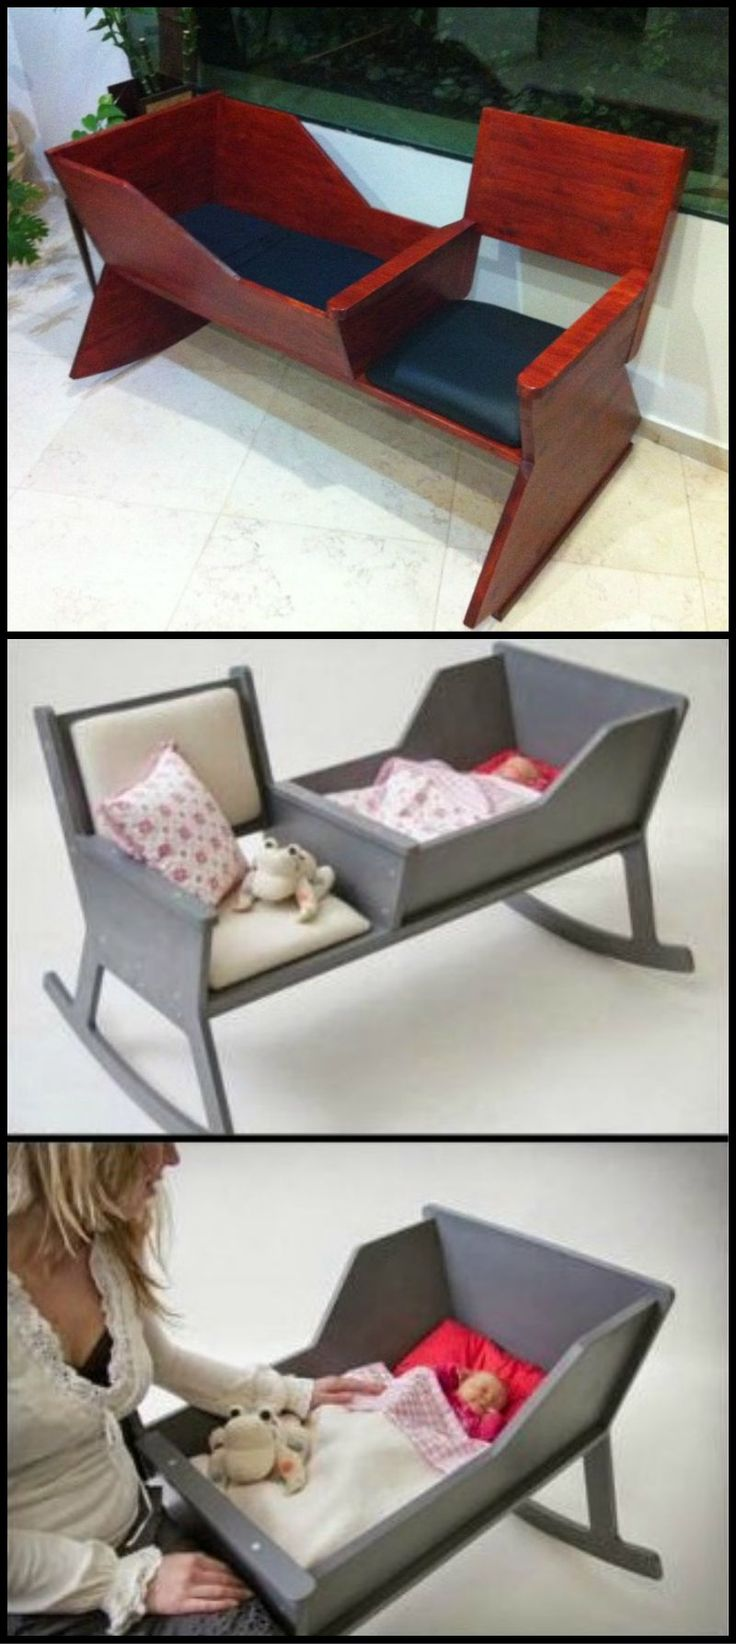 How To Build A Rocking Chair With Cradle  http://theownerbuildernetwork.co/nh70  Rocking is soothing and relaxing for babies and adults alike. This project will let you rock with or without a little one.